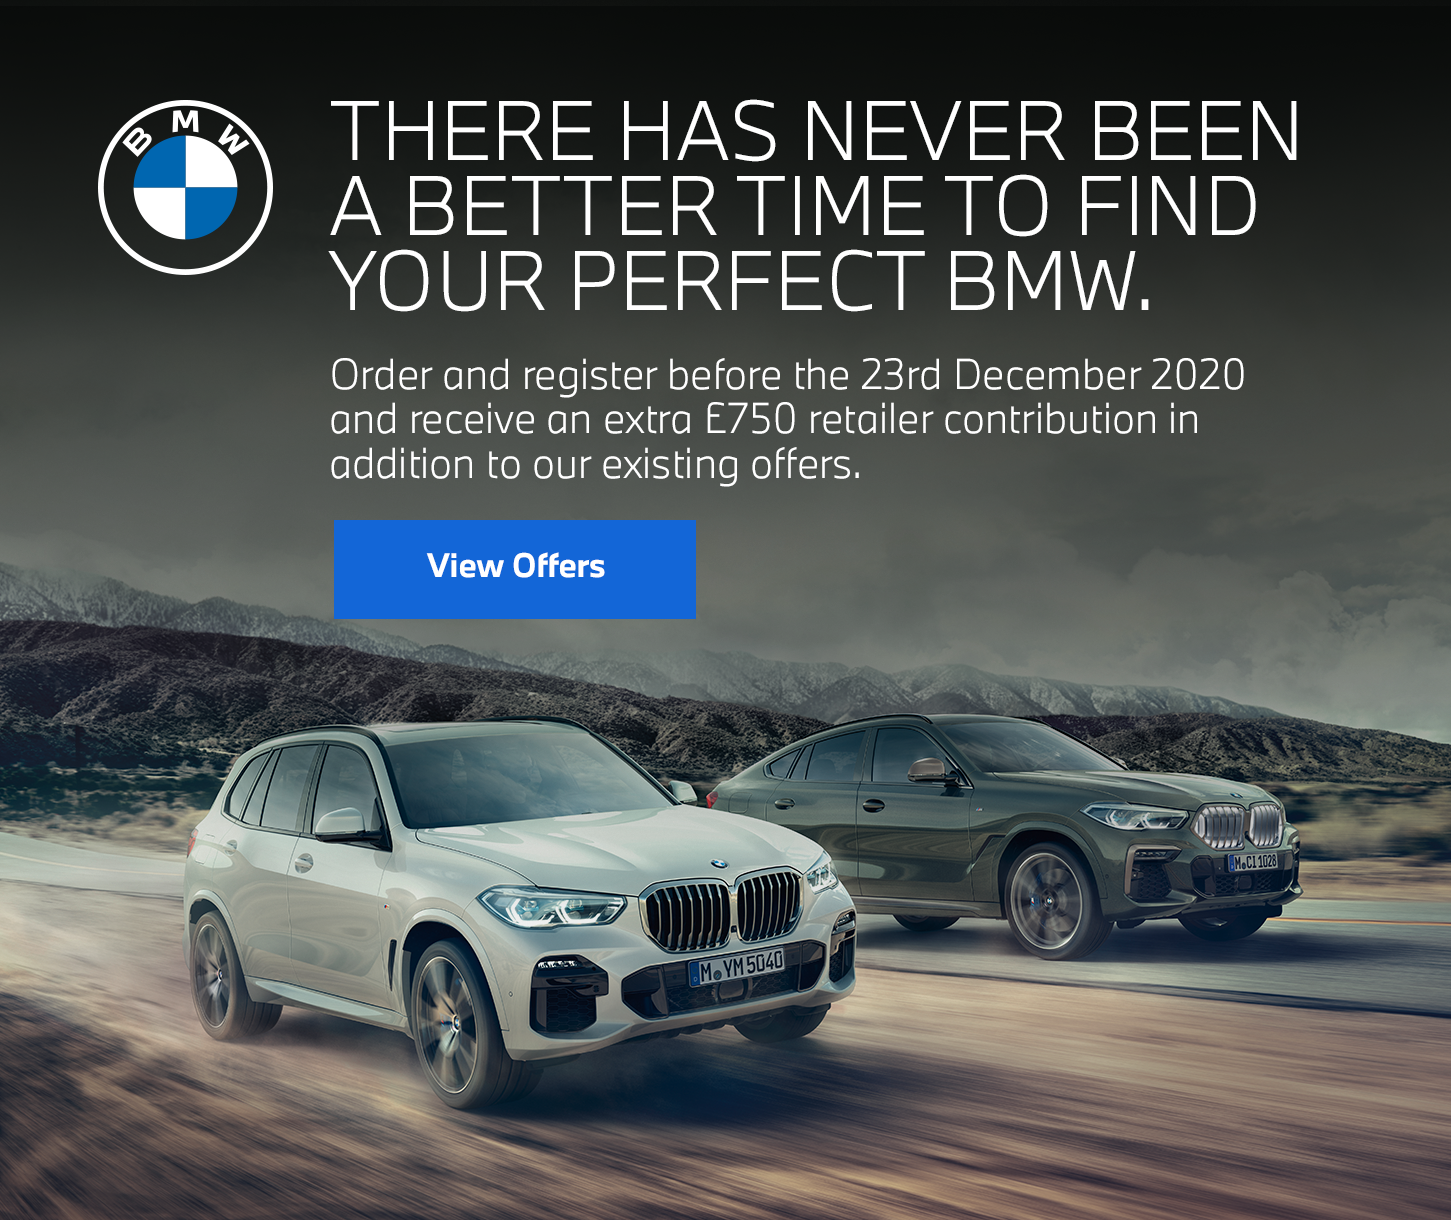 Find your perfect BMW